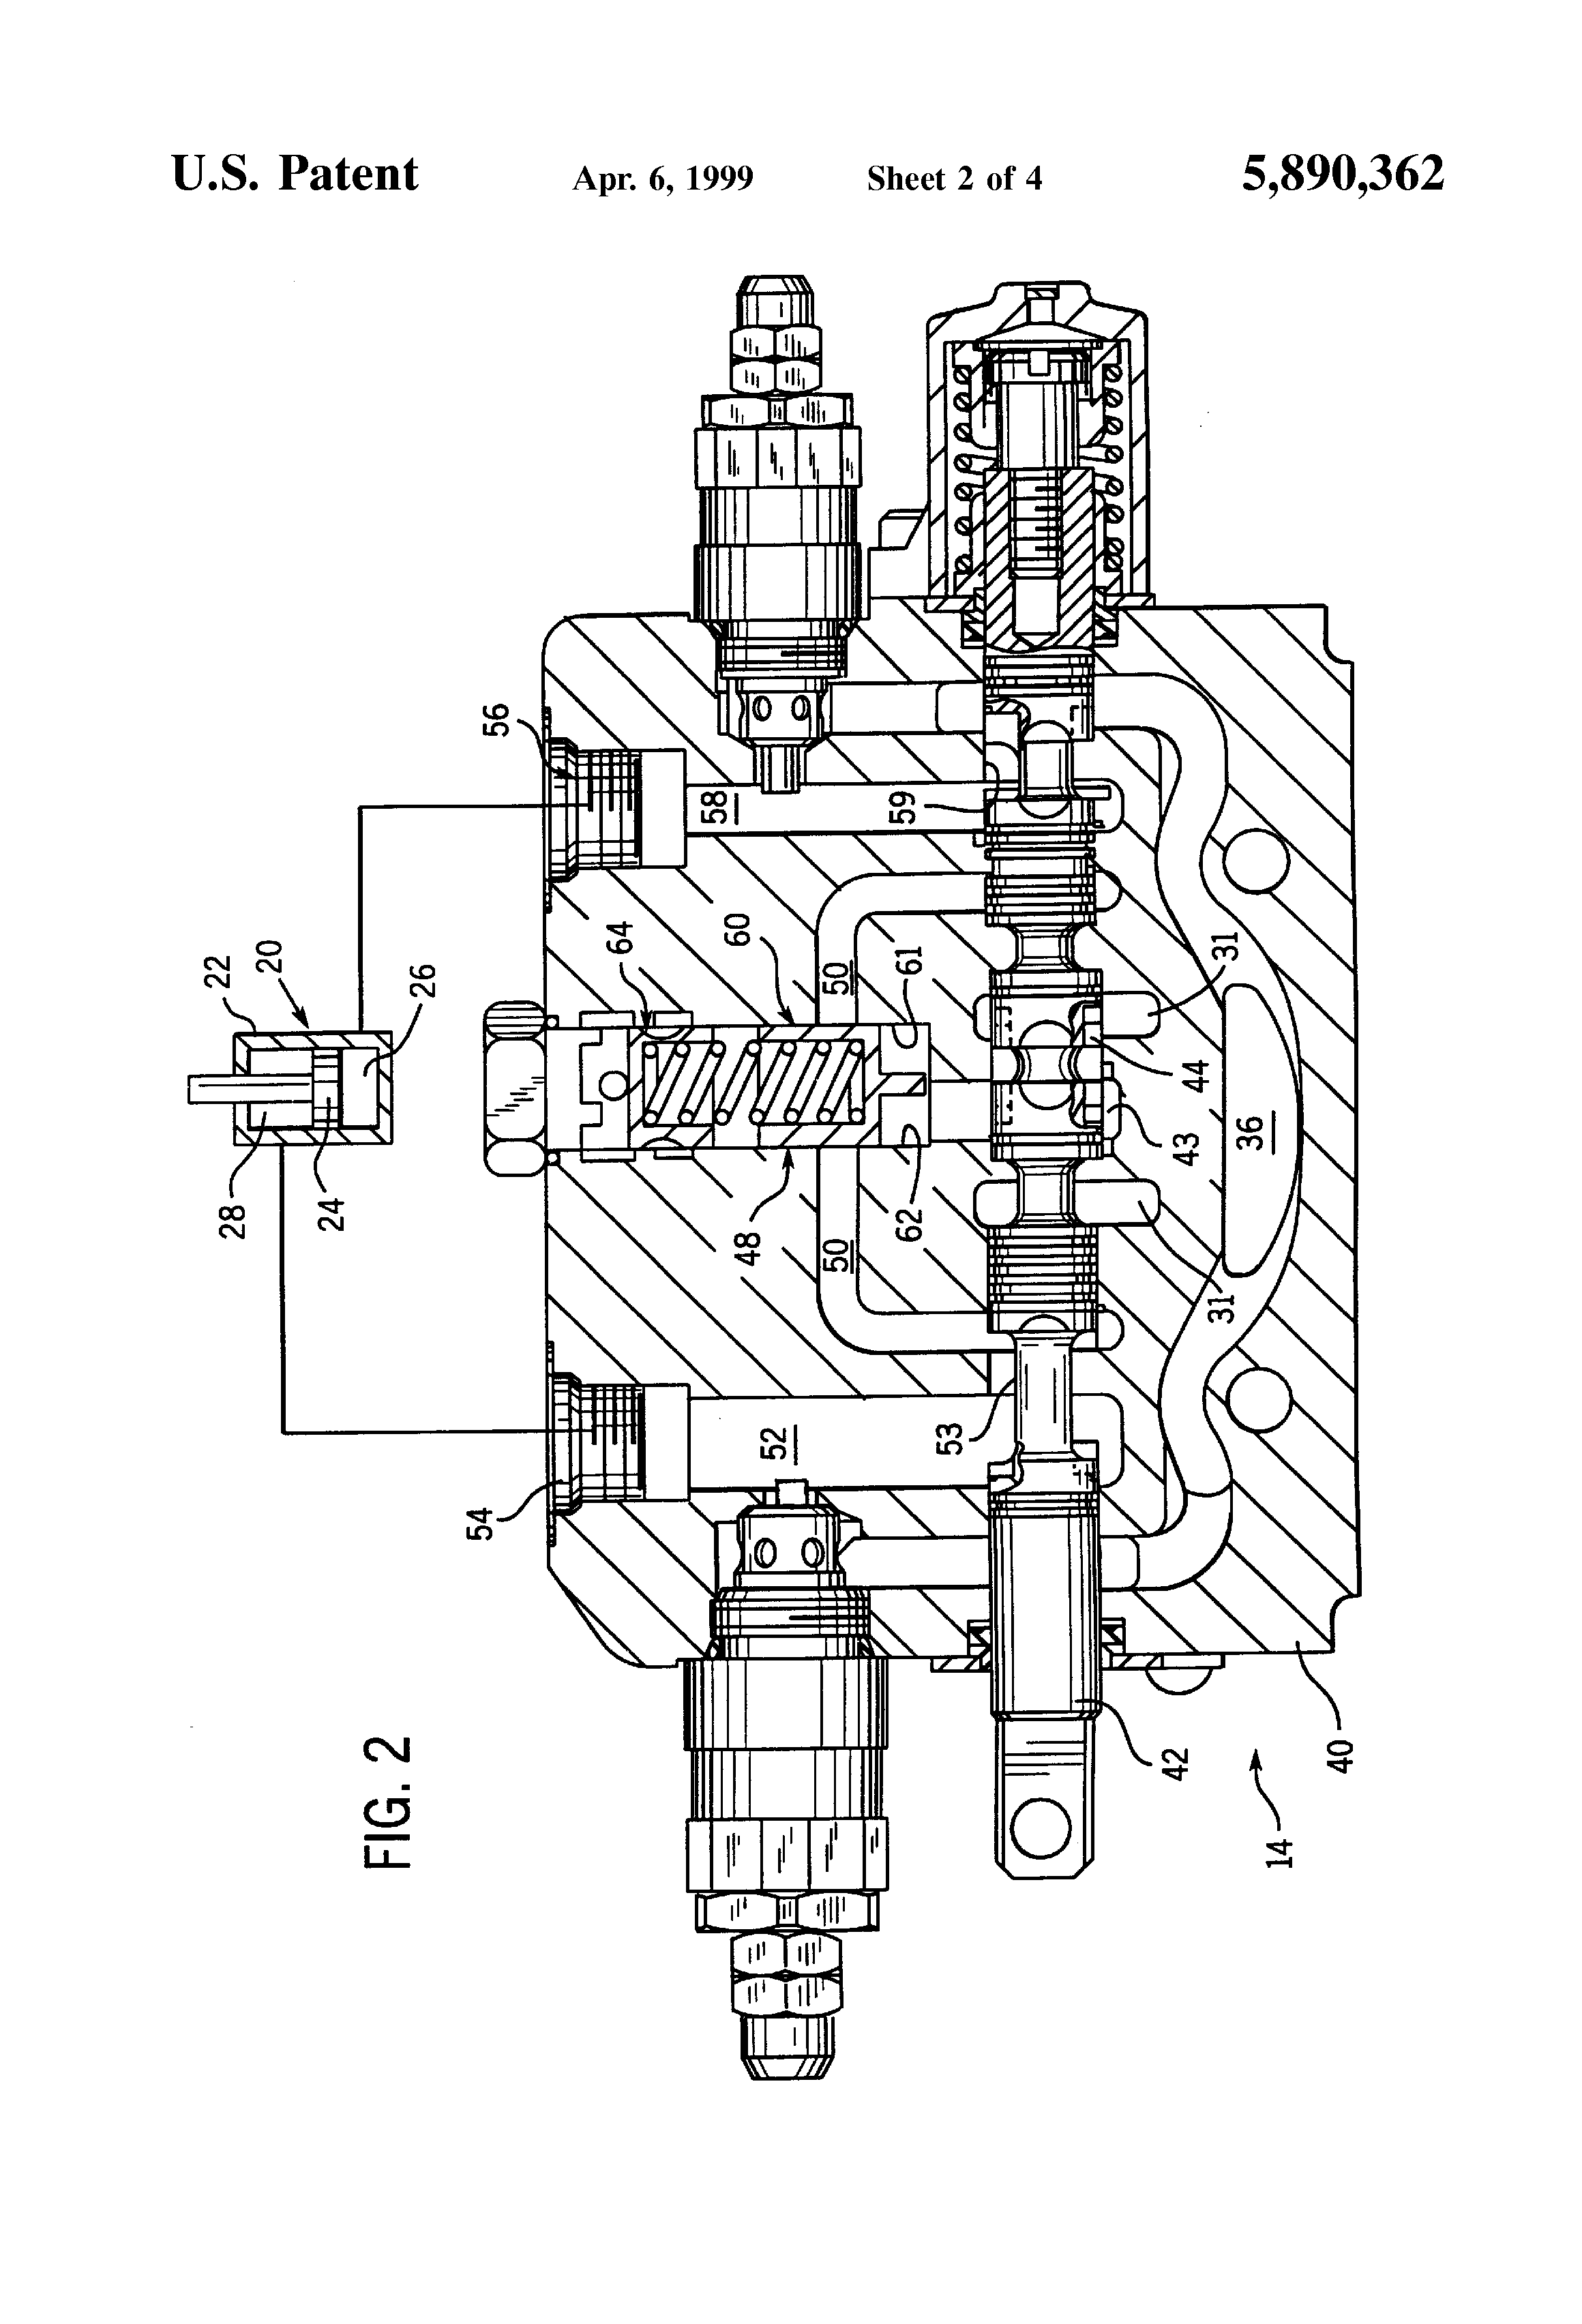 Hydraulic System Drawing : Patent us hydraulic control valve system with non